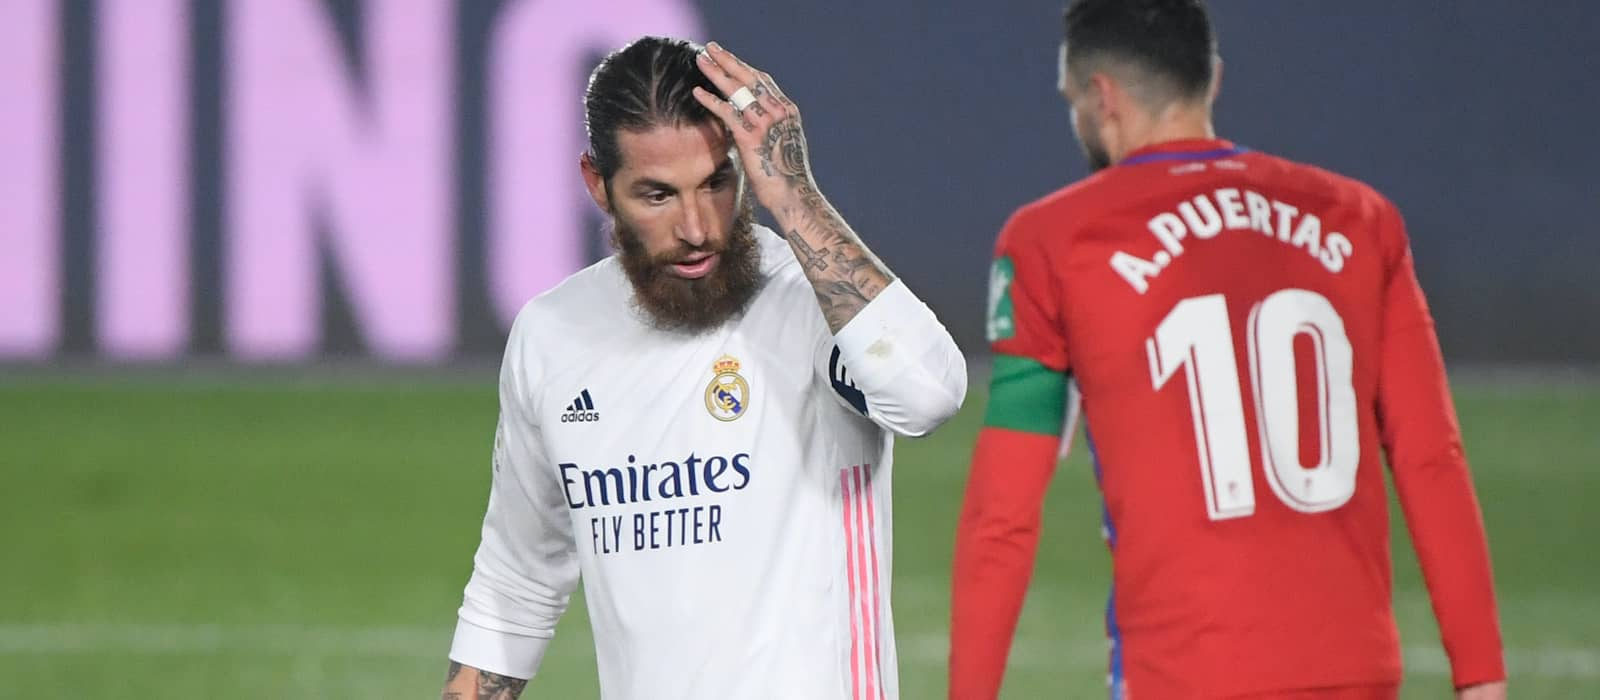 Sergio Ramos will close Man United deal next week, Spanish outlet claims